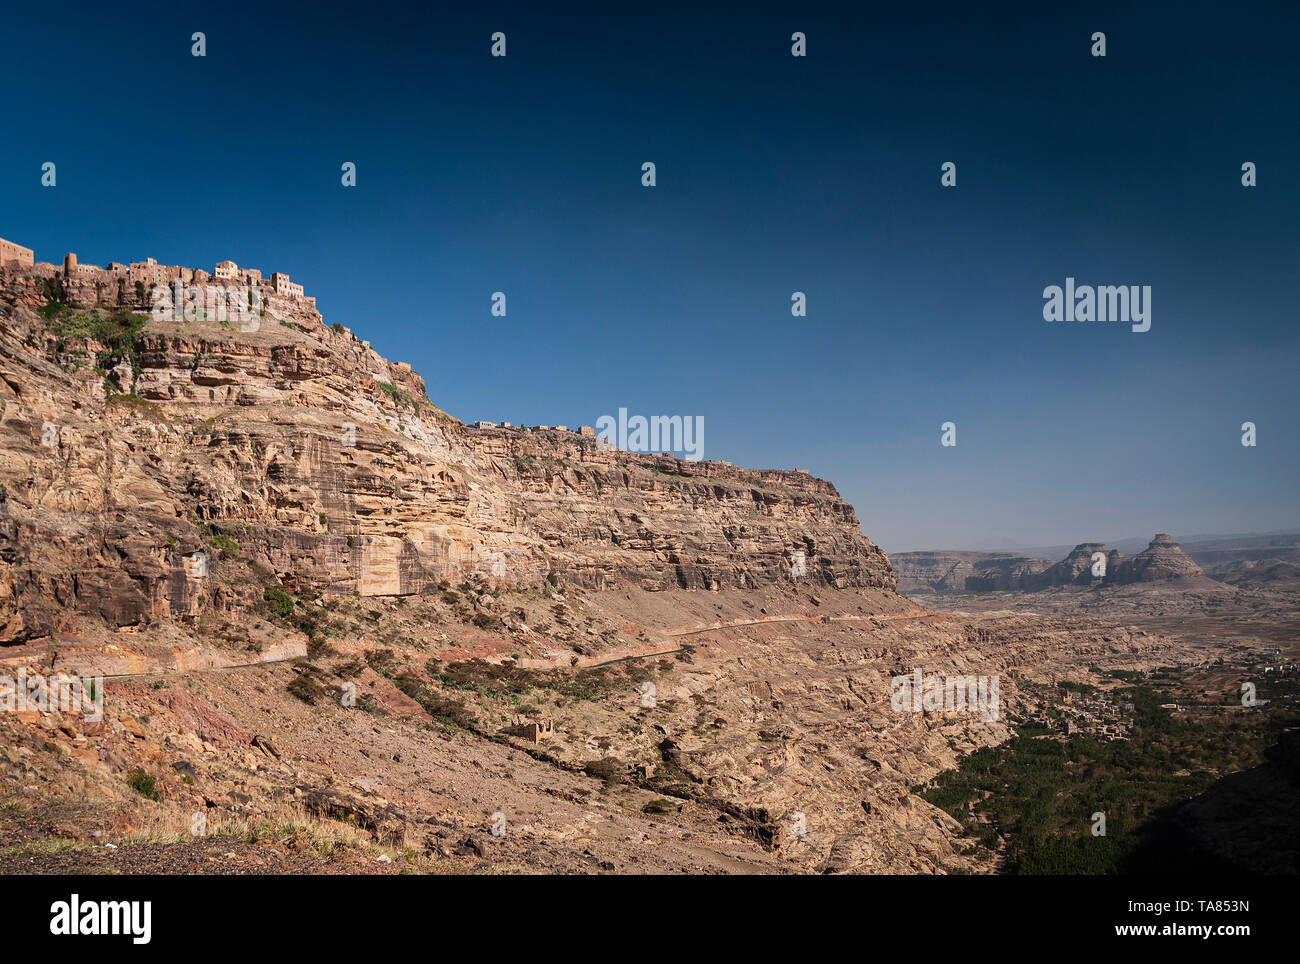 kawkaban ancient traditional architecture hilltop village in haraz mountains of yemen - Stock Image